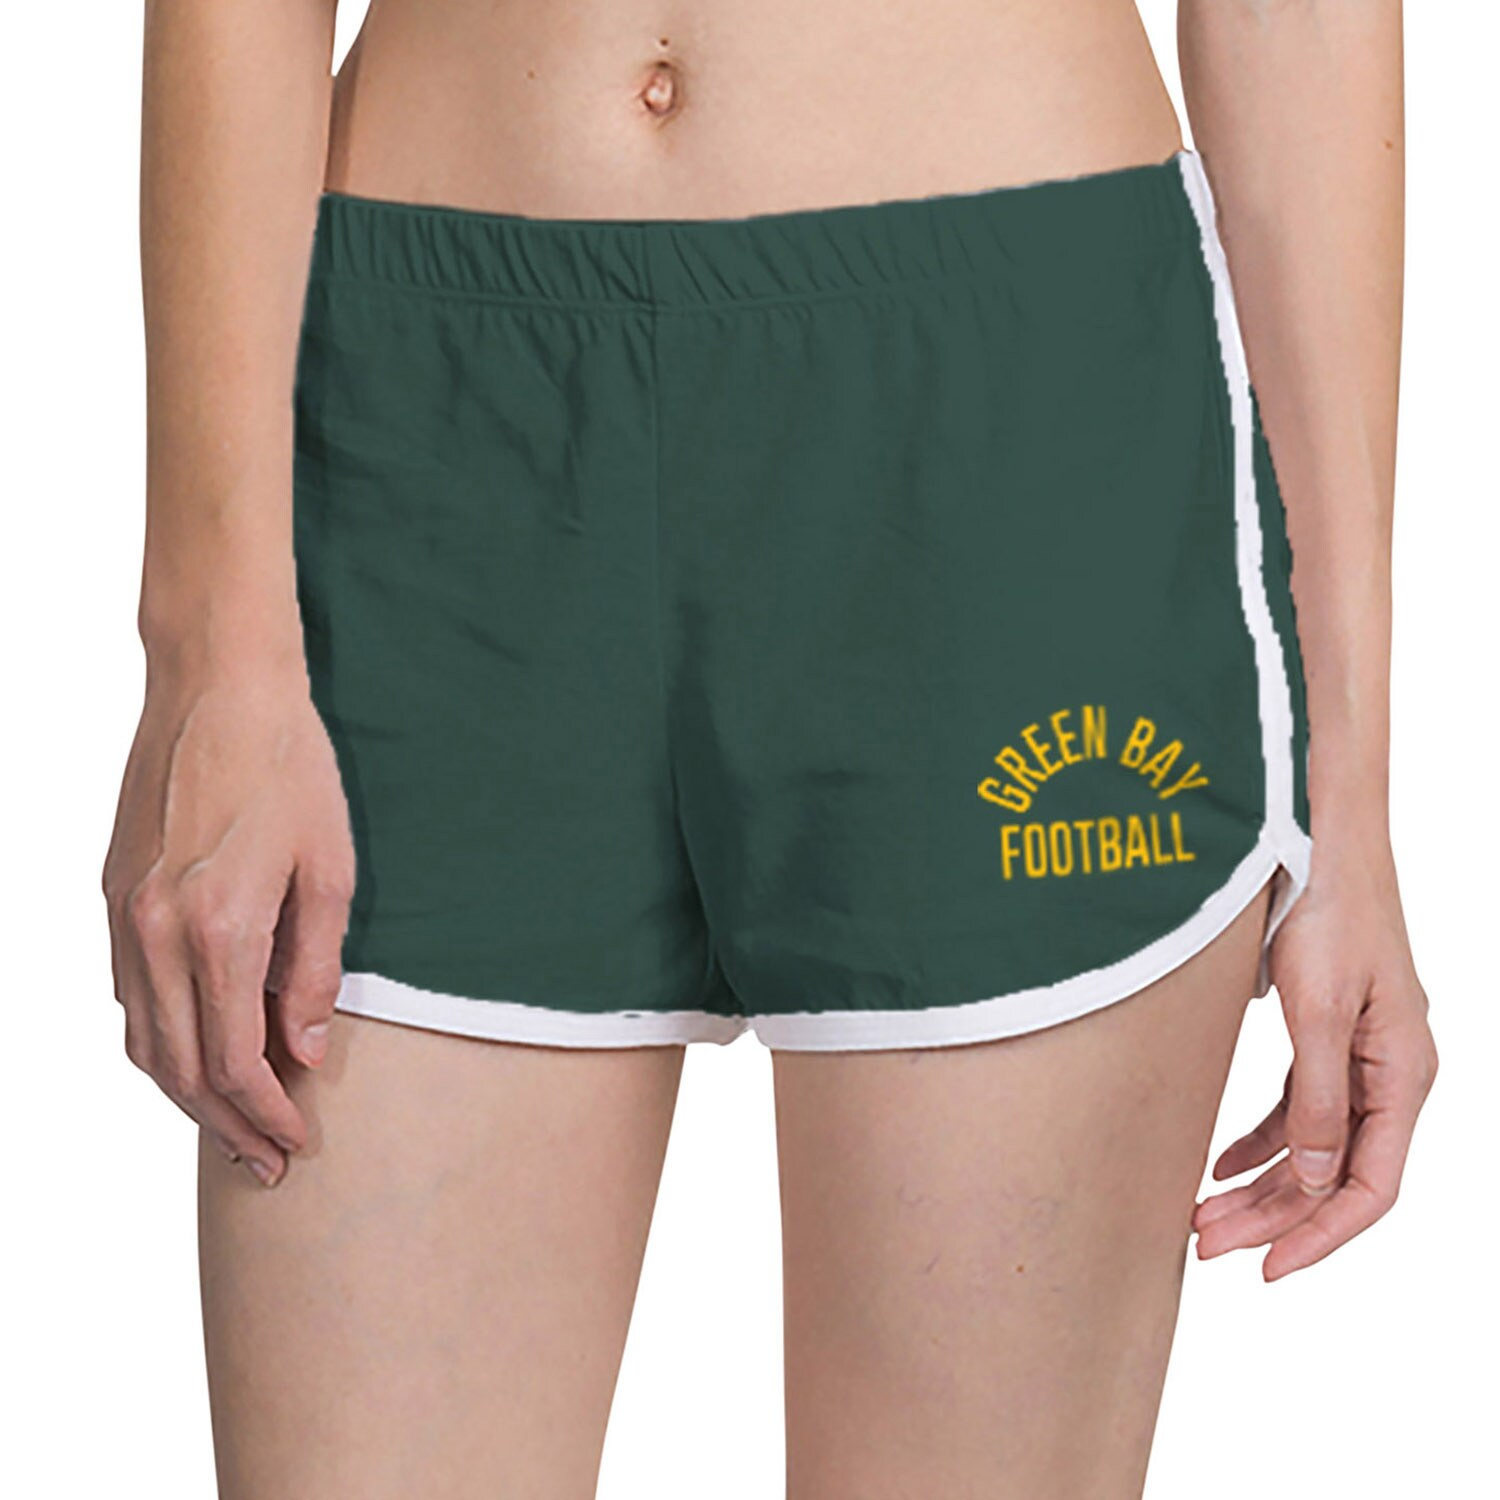 Green Bay Packers Junk Food Women's Lounge Shorts - Green